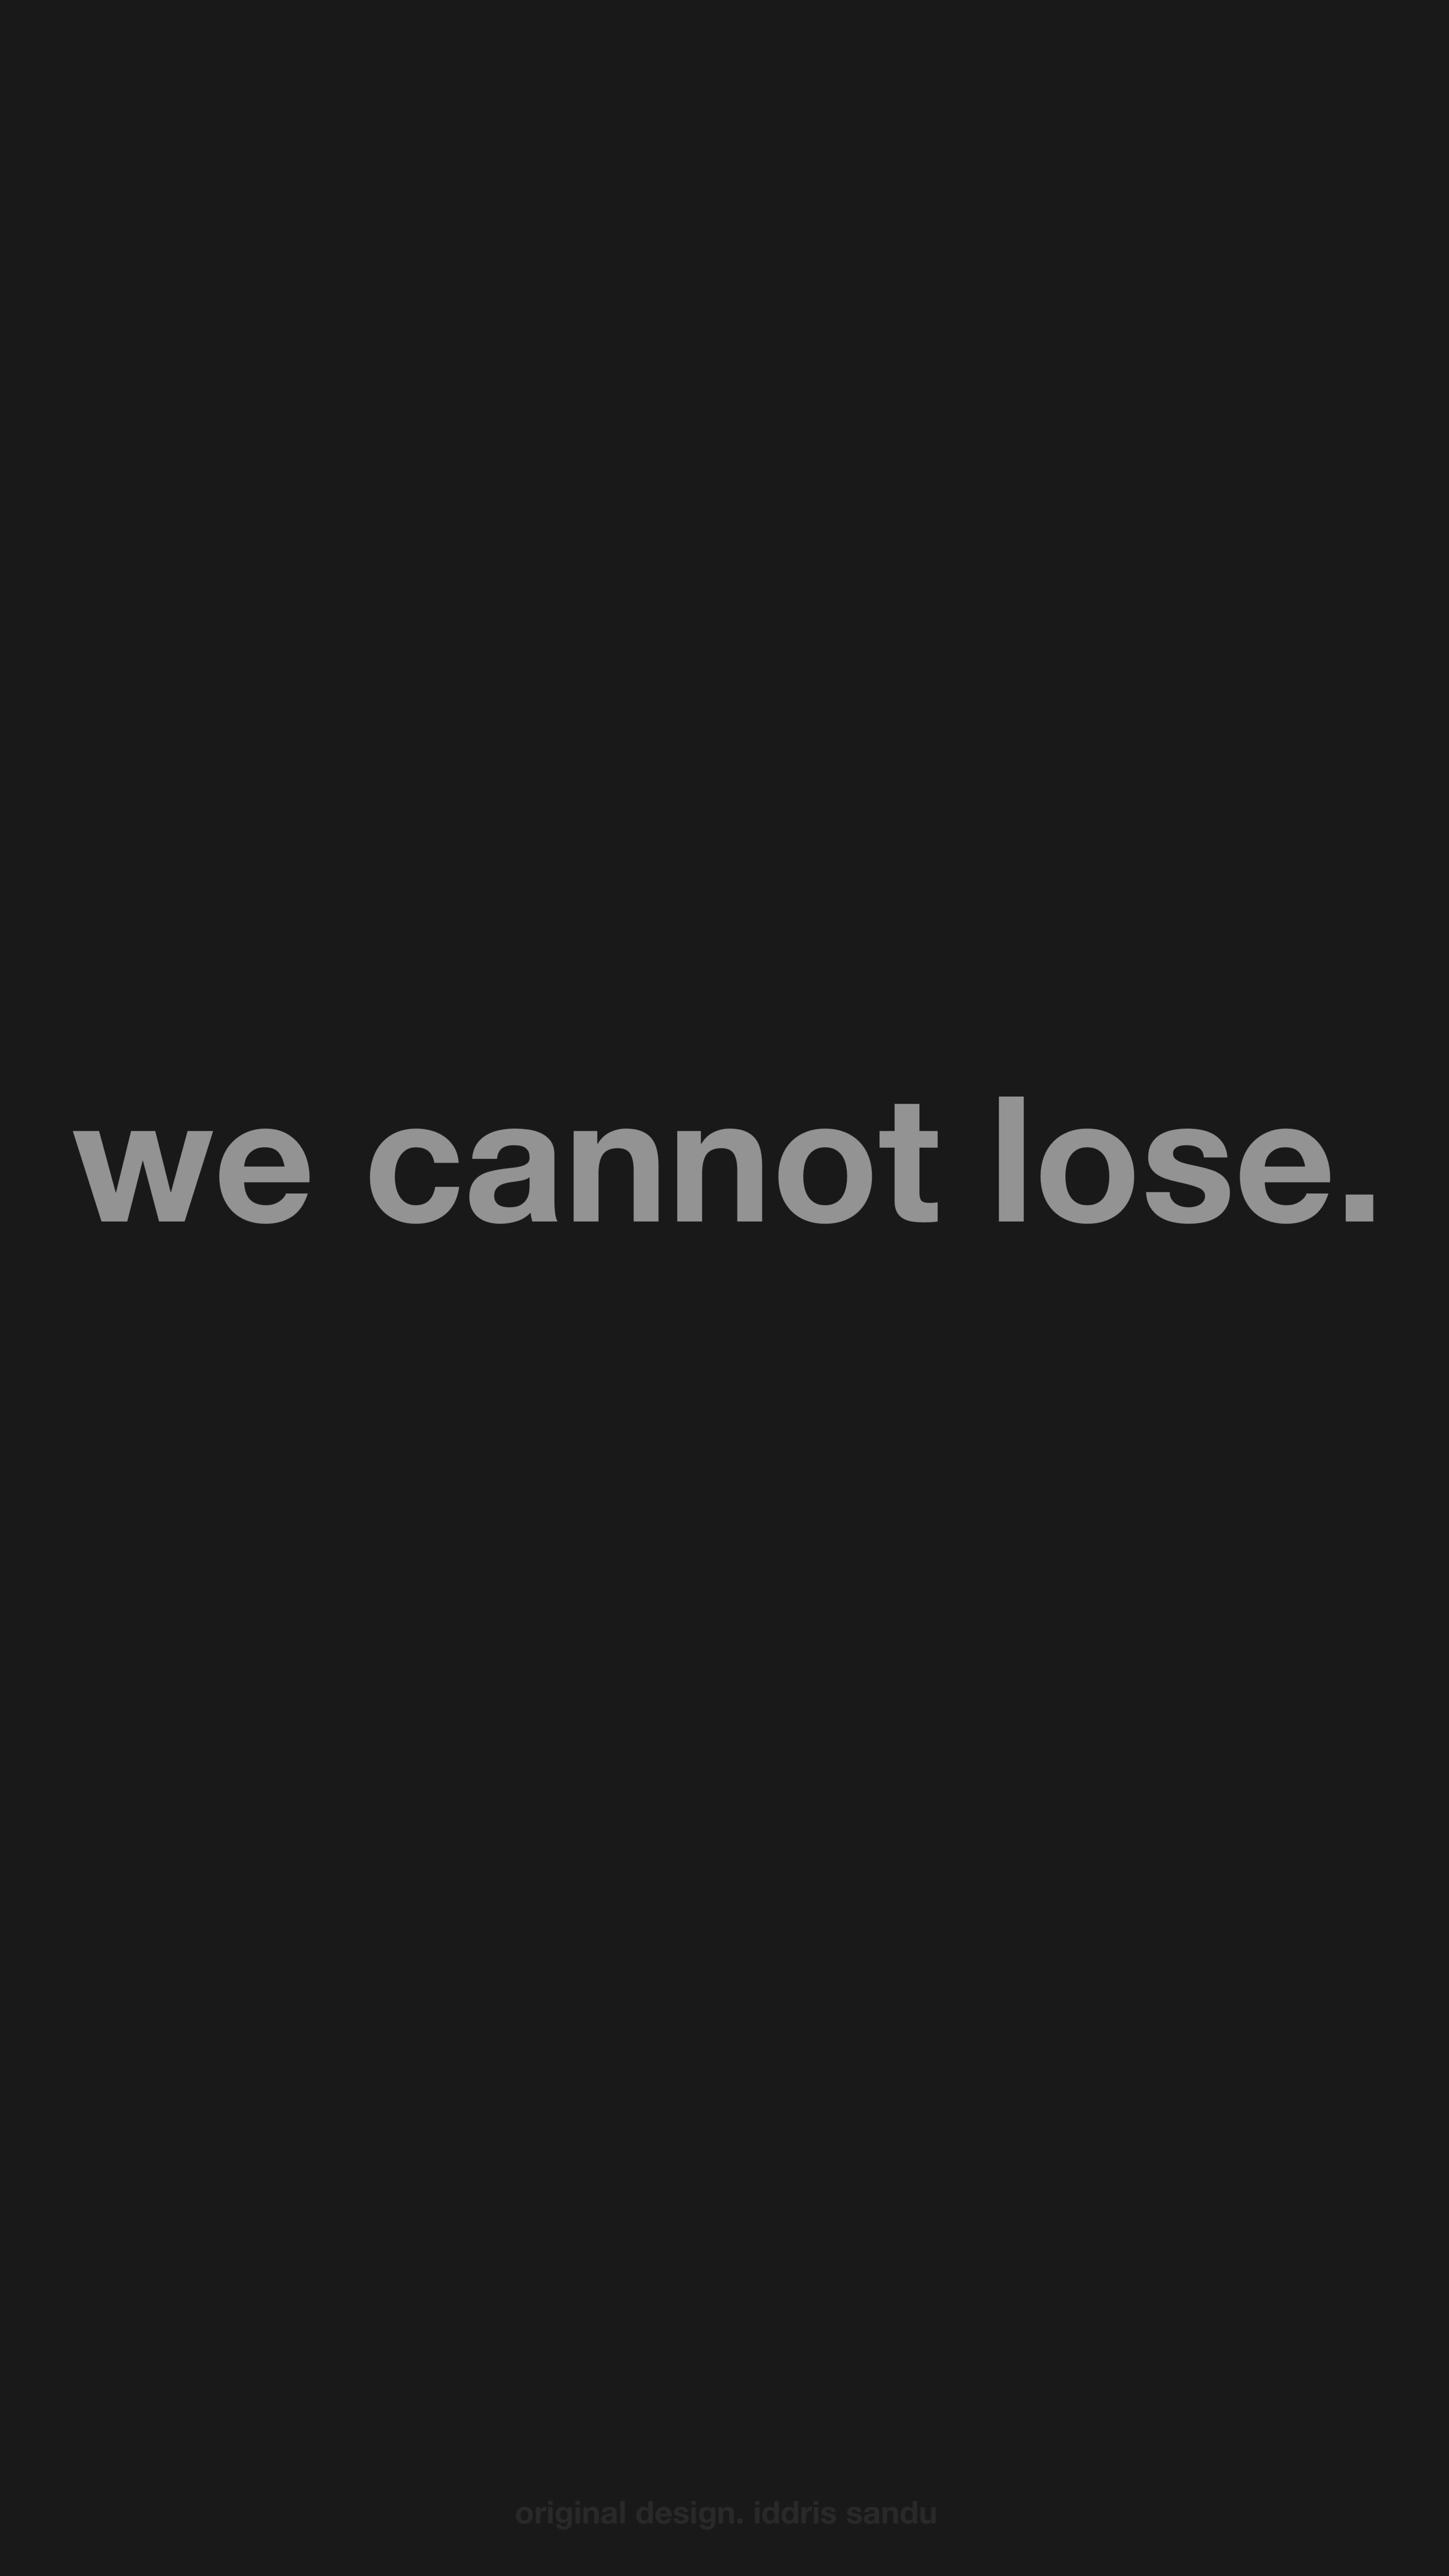 we cannot lose (mobile).png